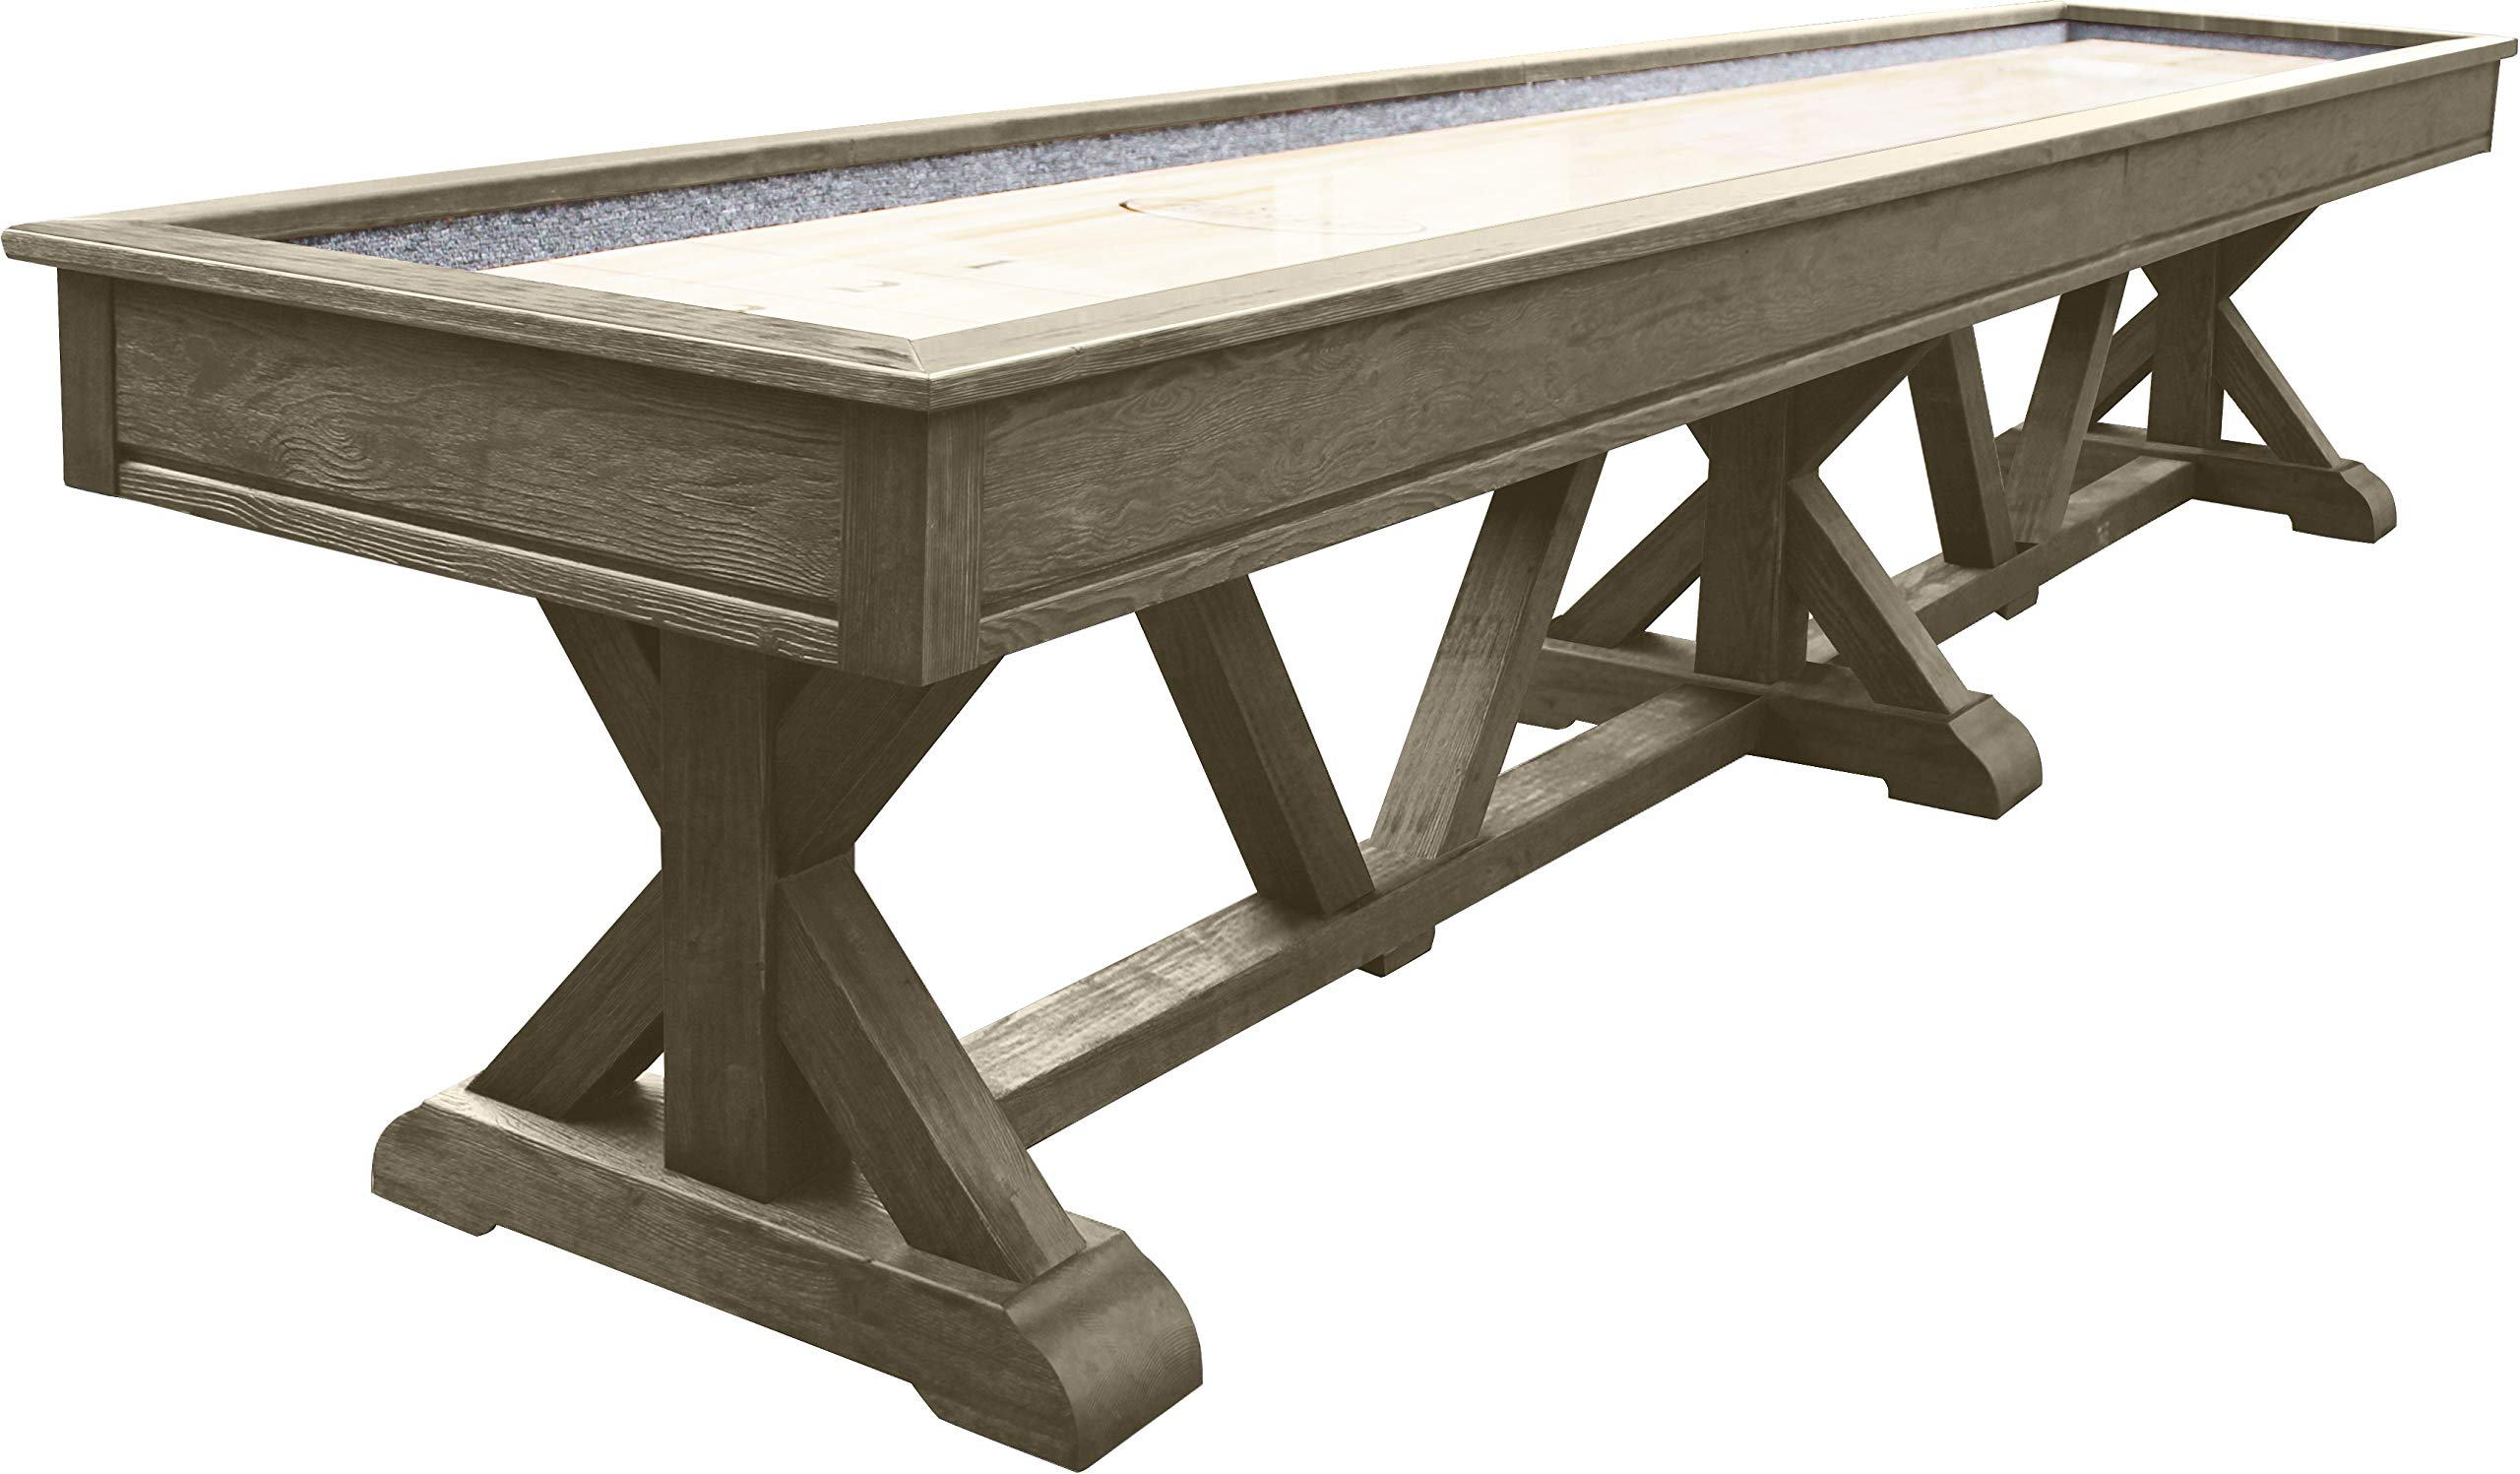 Playcraft Brazos River 16' Weathered Gray Pro-Style Shuffleboard Table by Playcraft